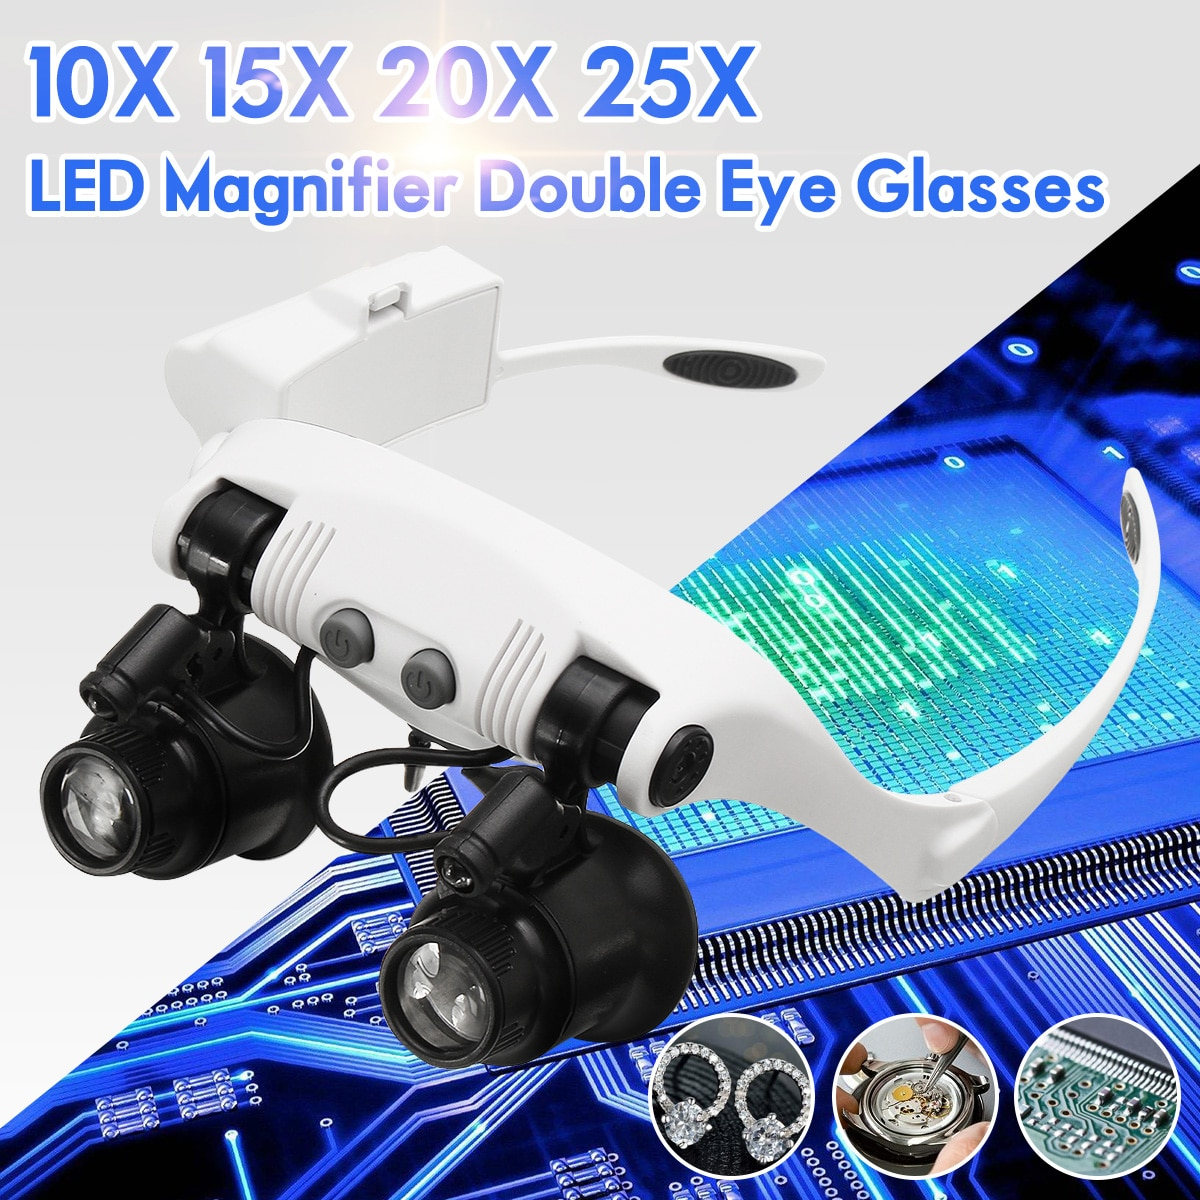 10X 15X 20X 25X LED Magnifier Double Eye Glasses Loupe Lens Jeweler Watch Repair Measurement with 8